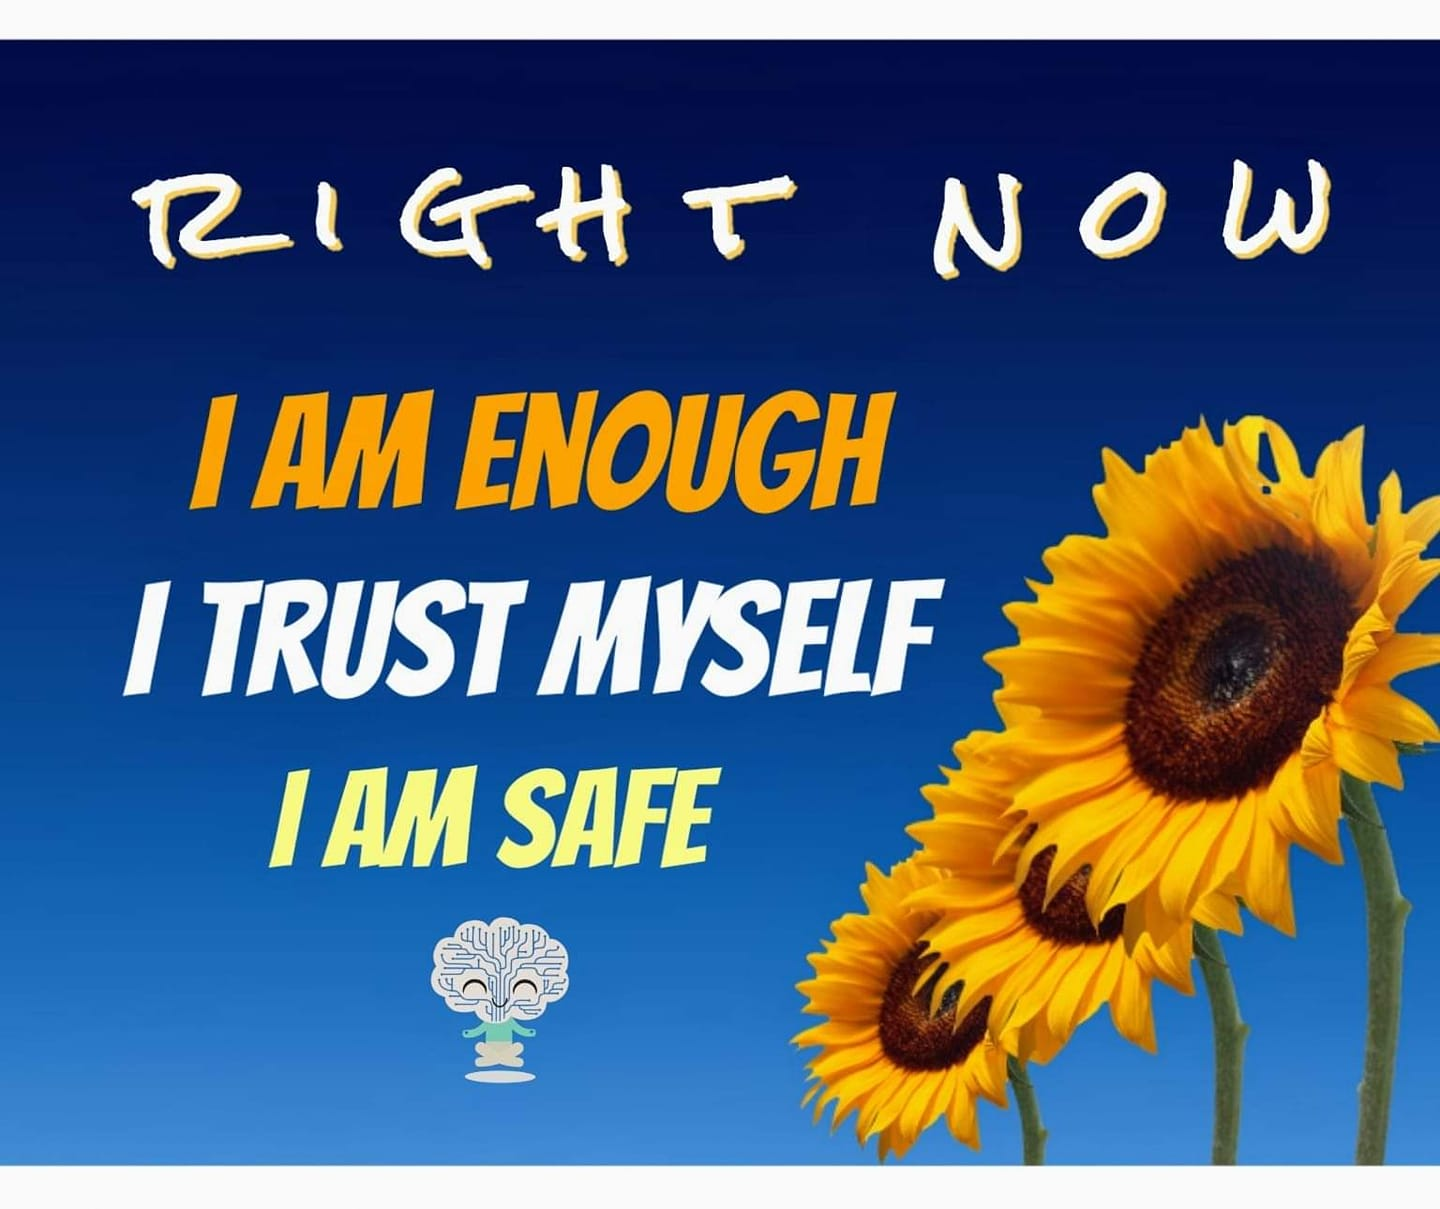 Creating Inner Safety with Self-Trust